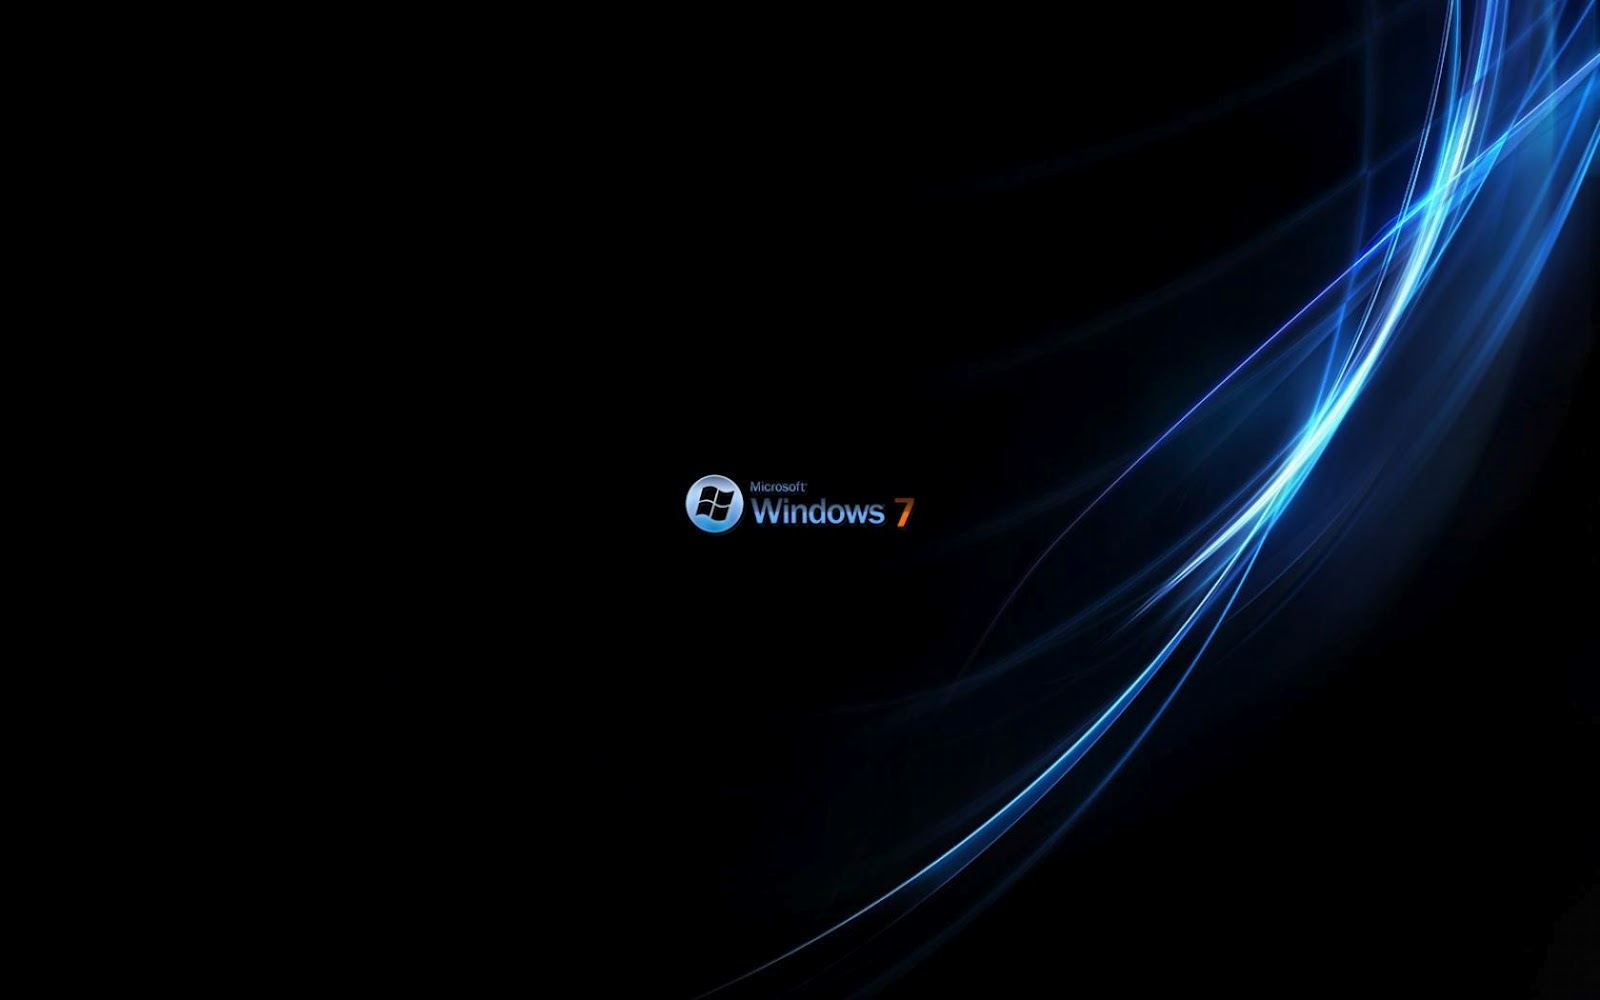 Black Color Windows 7 Wallpapers The Top Desktop HD Wallpapers 1600x1000